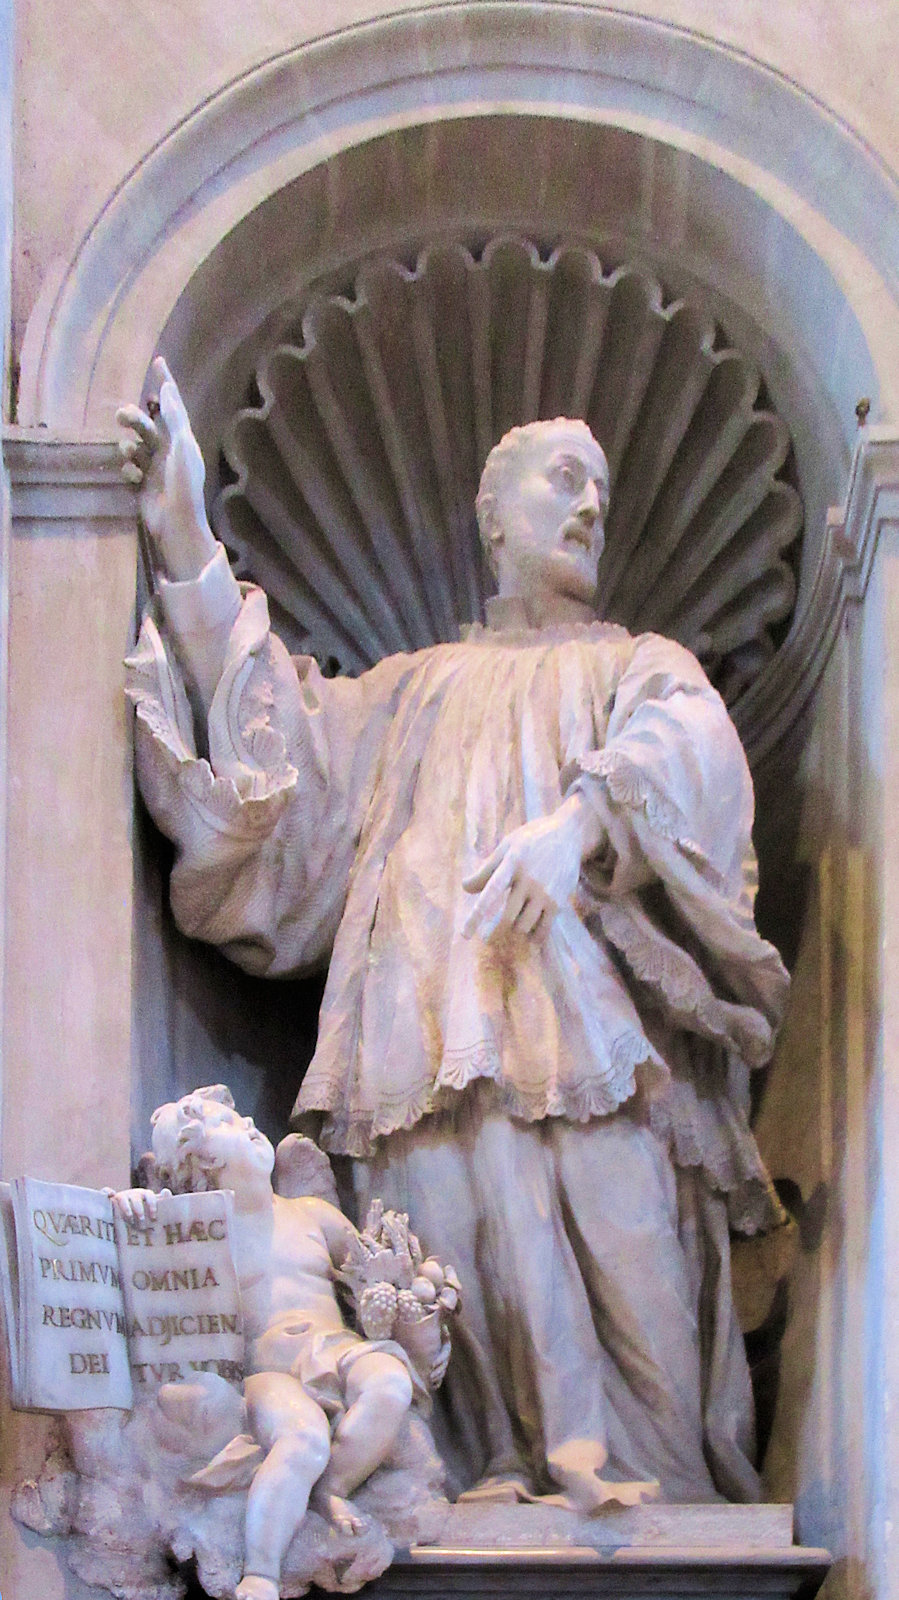 Statue im Petersdom in Rom